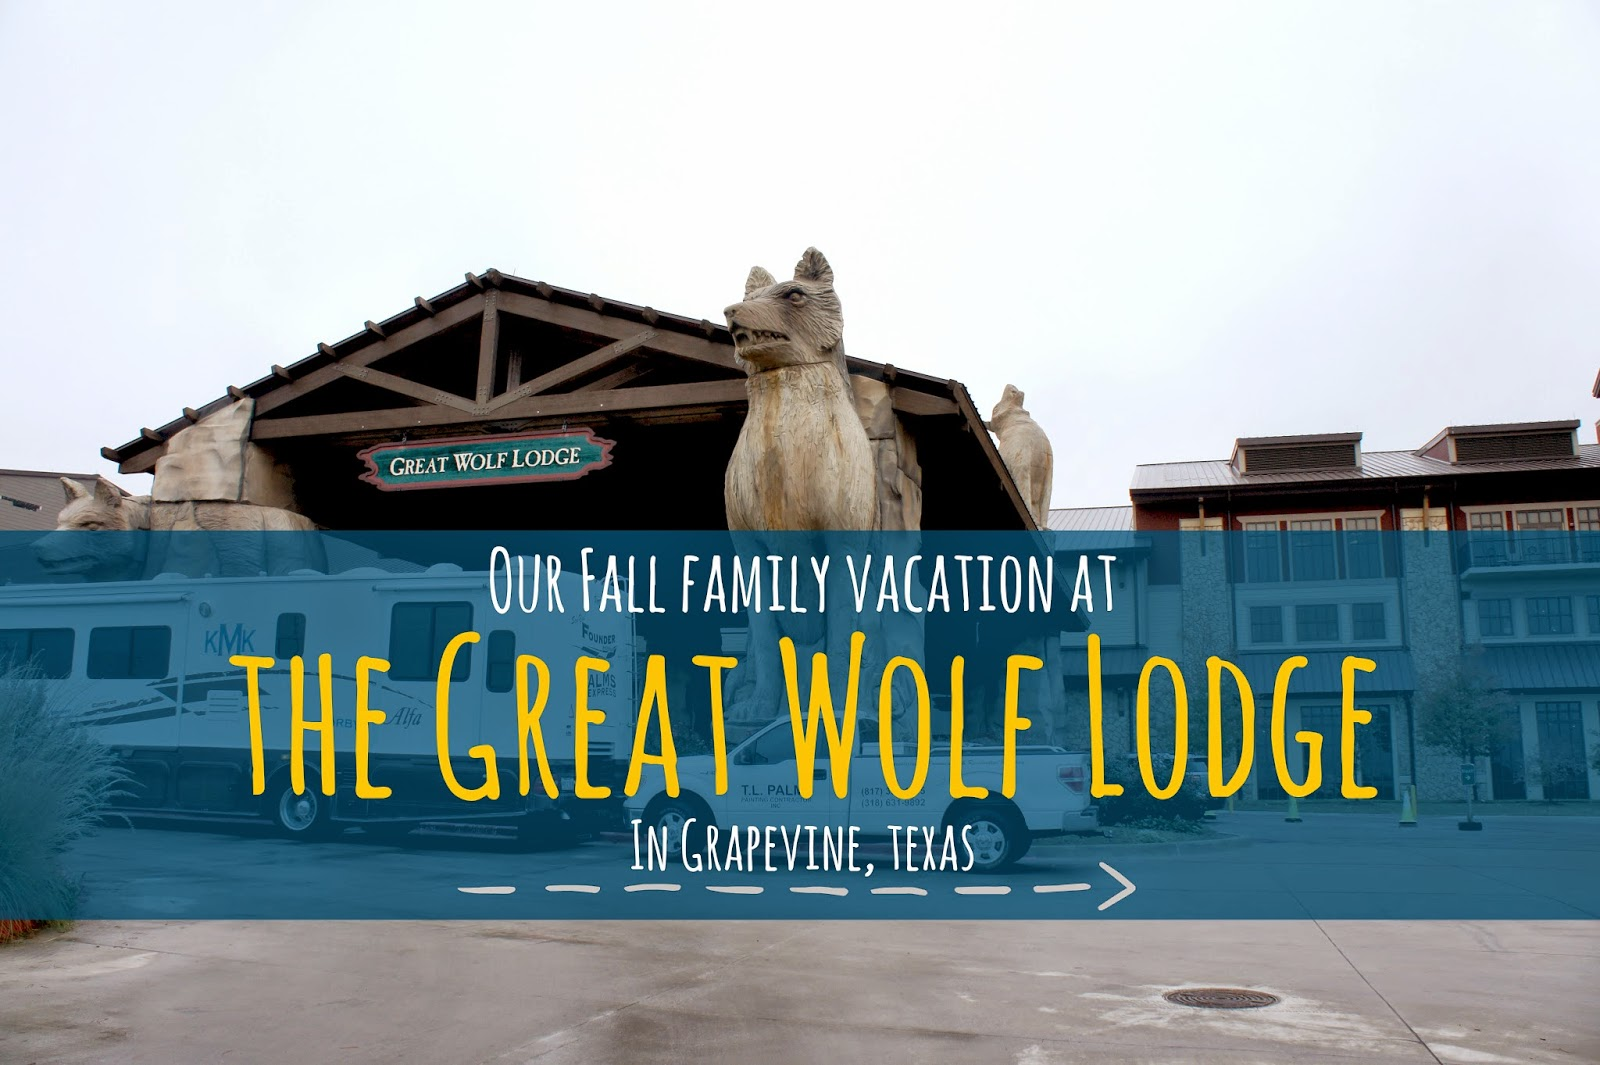 Family Vacations at the Great Wolf Lodge in Grapevine, Texas